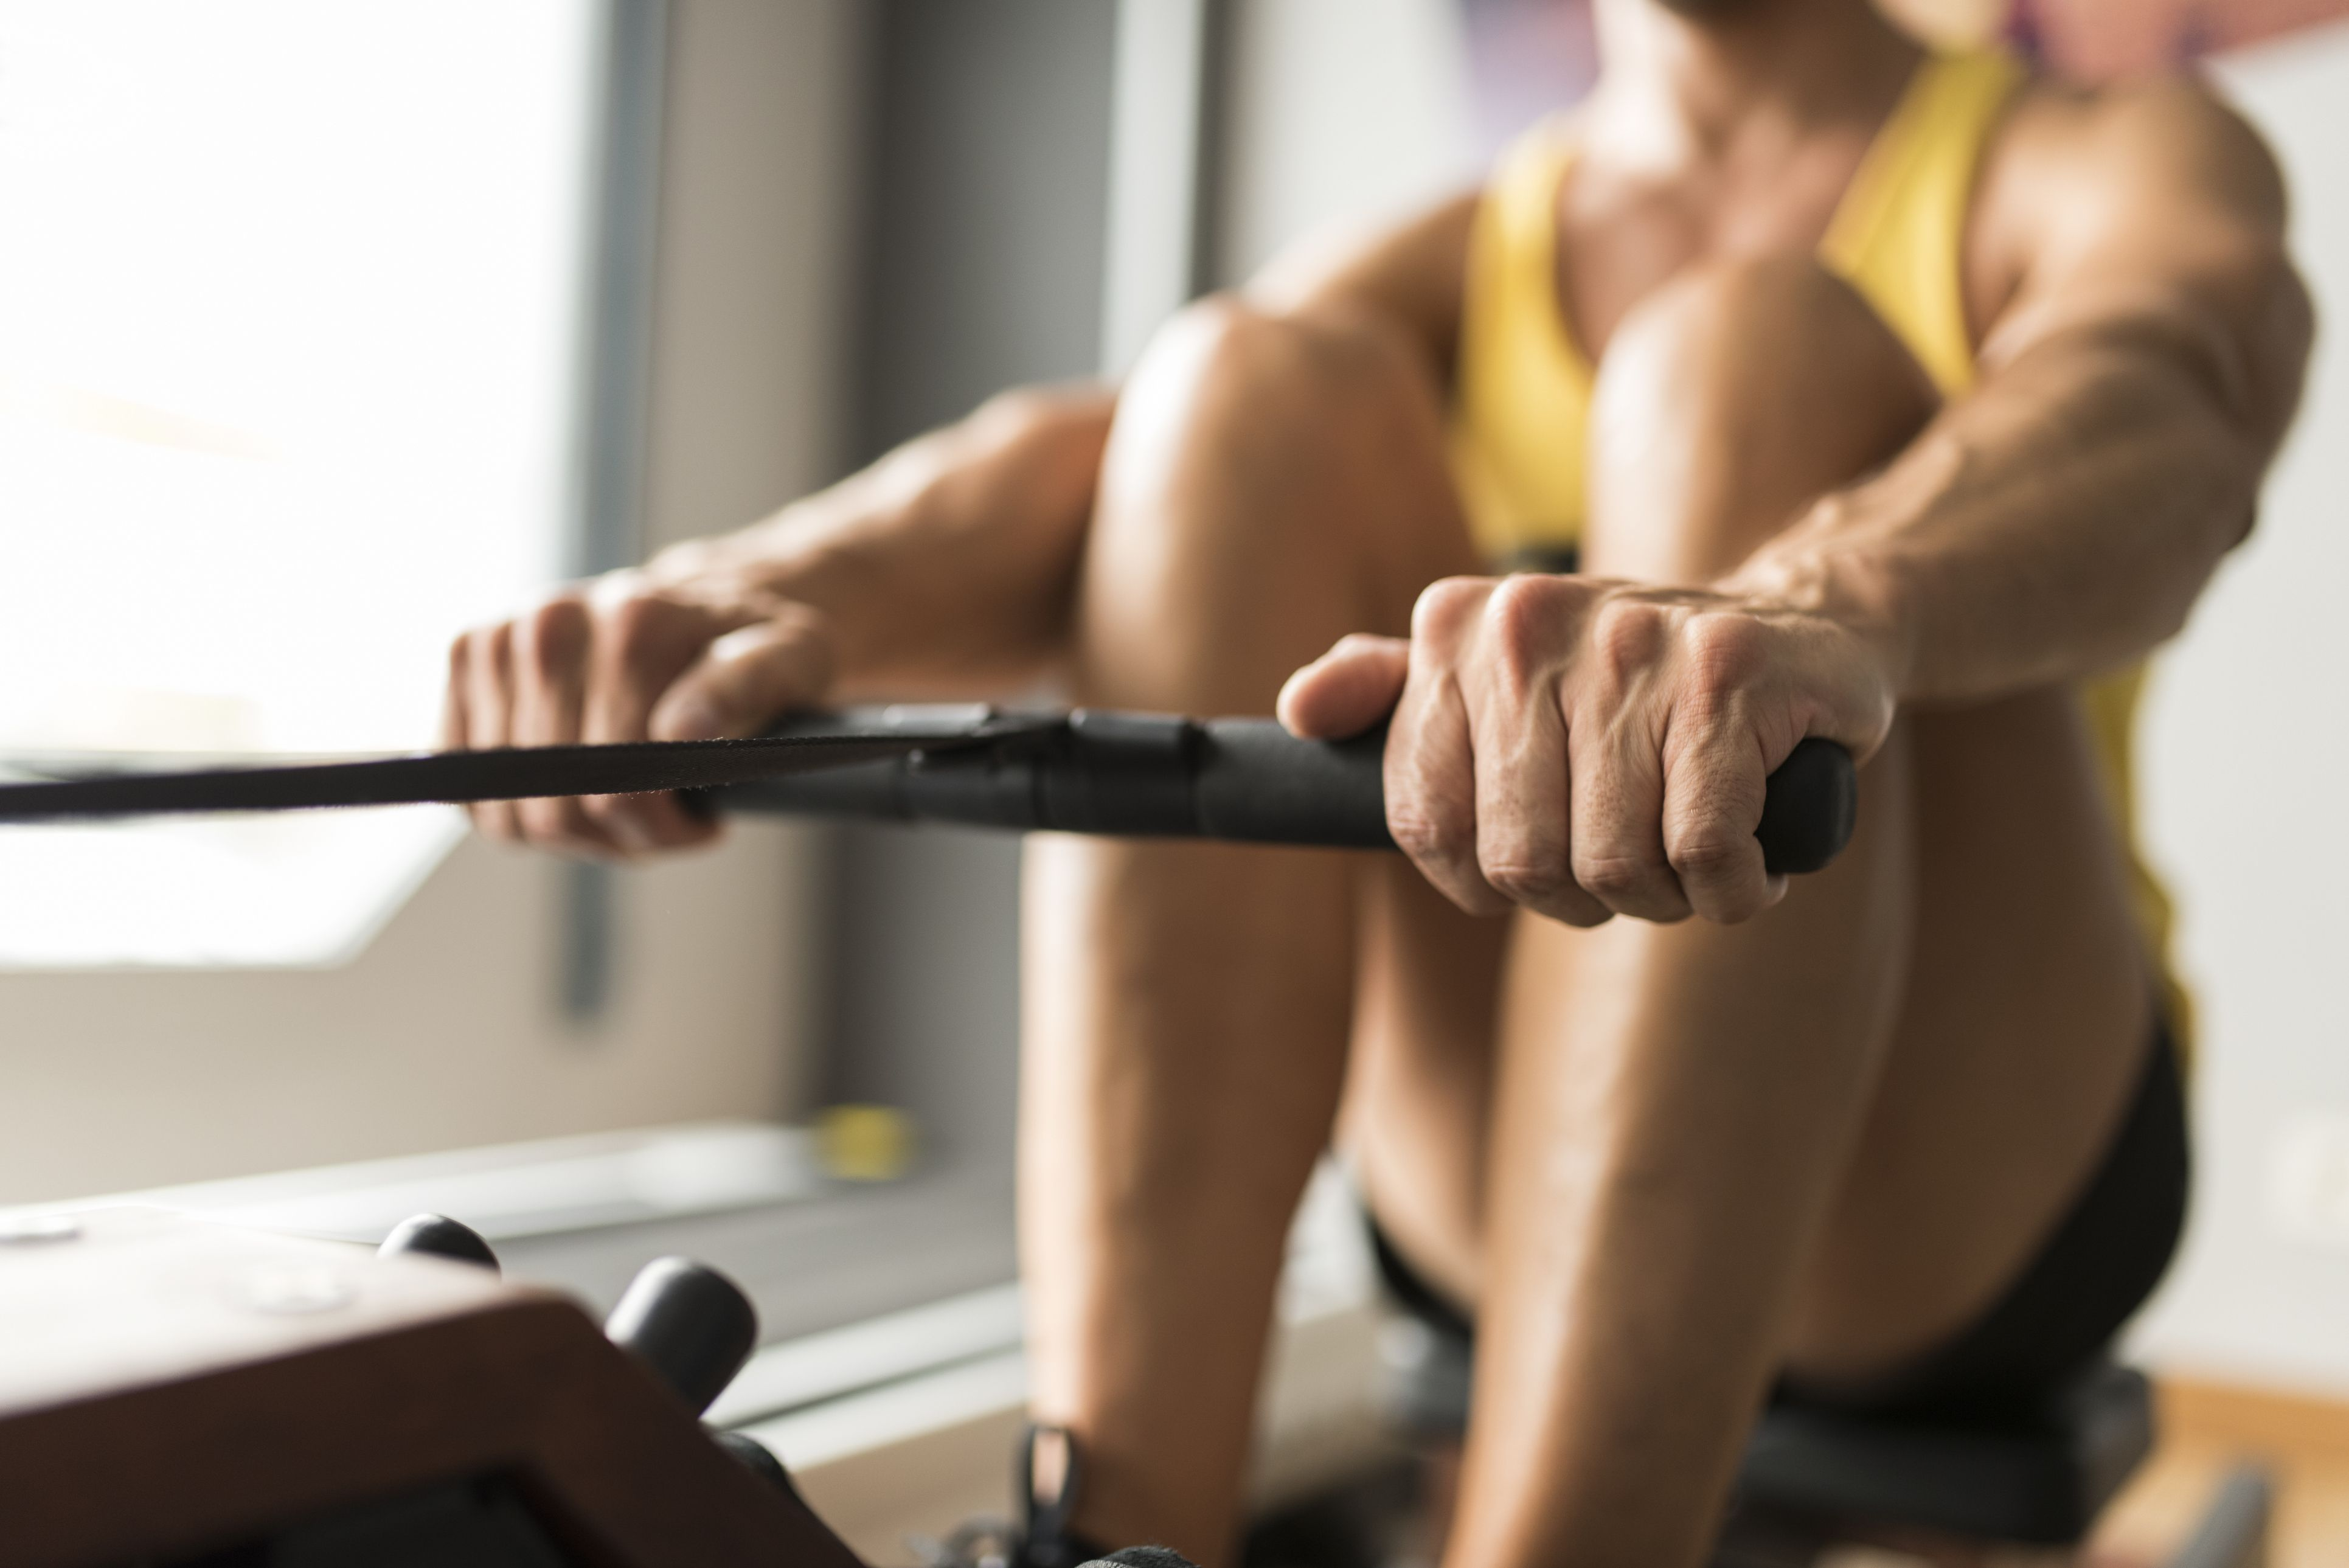 The Best Rowing Machine Workouts for Your Cross-Training Days